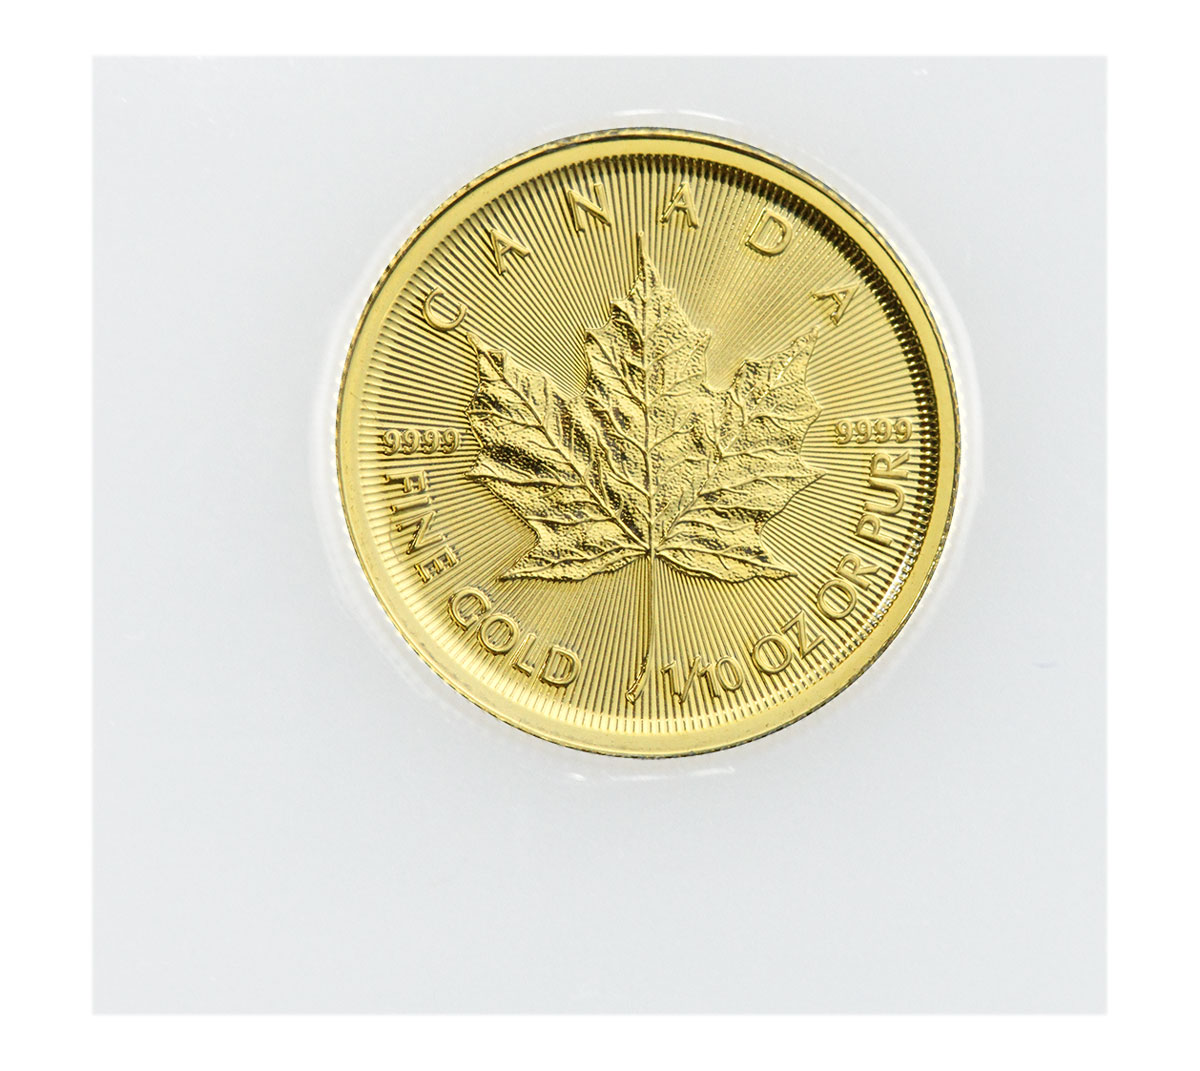 2021 Canada 1/10 oz Gold Maple Leaf $5 Coin GEM BU